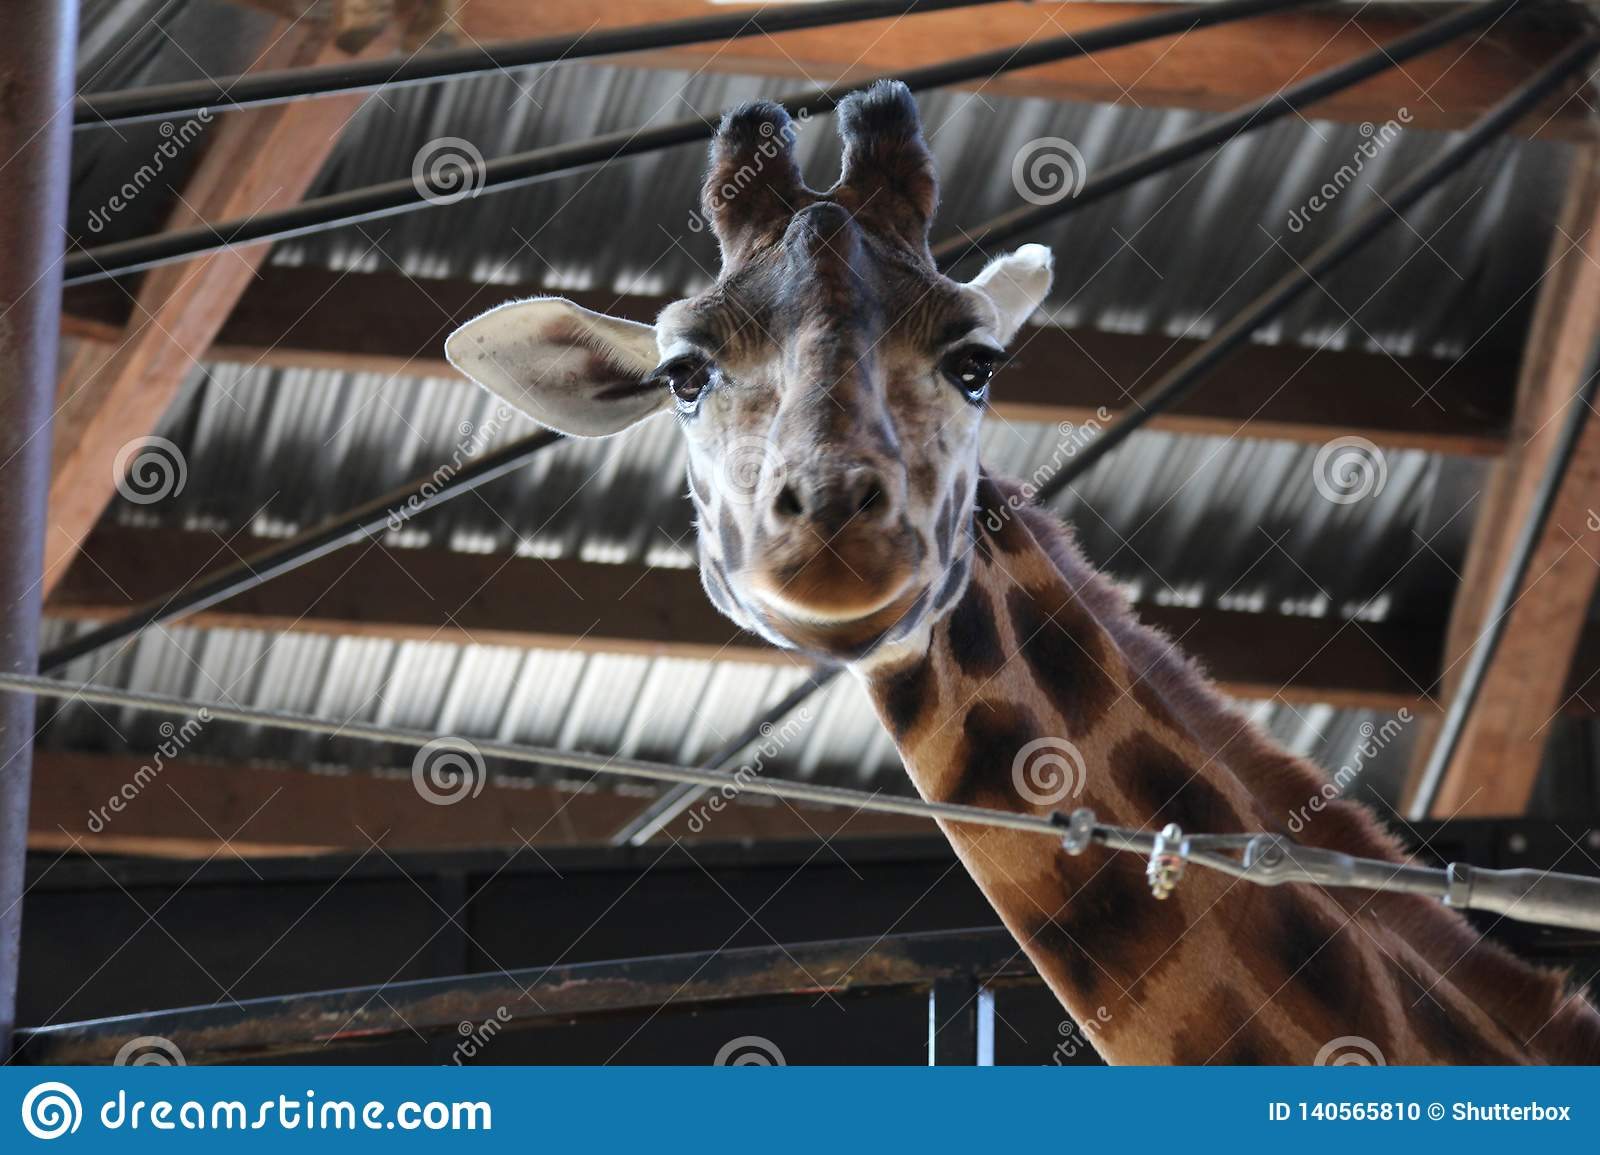 Giraffe looking at camera with grin on face